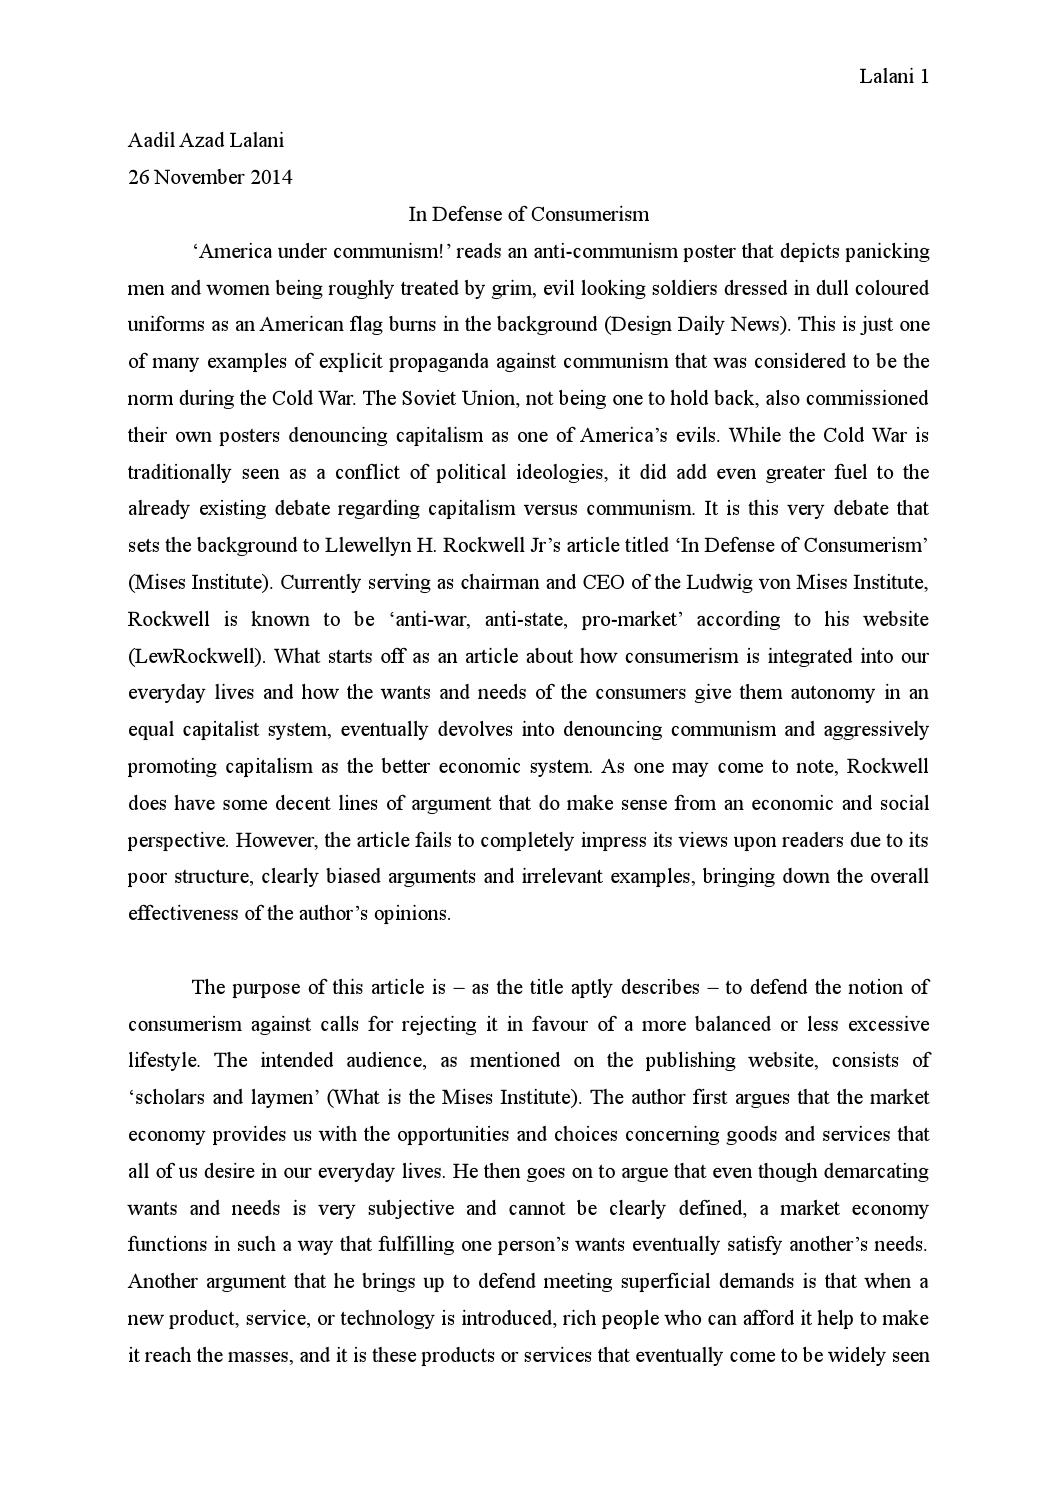 an analysis of the essay in defense of consumerism by llewellyn rockwell Books: wclf libertarian bibliography this list of suggested readings in libertarian theory and practice was developed in 1992 by paul geddes and steve vanagas of the greater vancouver libertarian association (gvla, now the west coast libertarian foundation) in vancouver, canada.